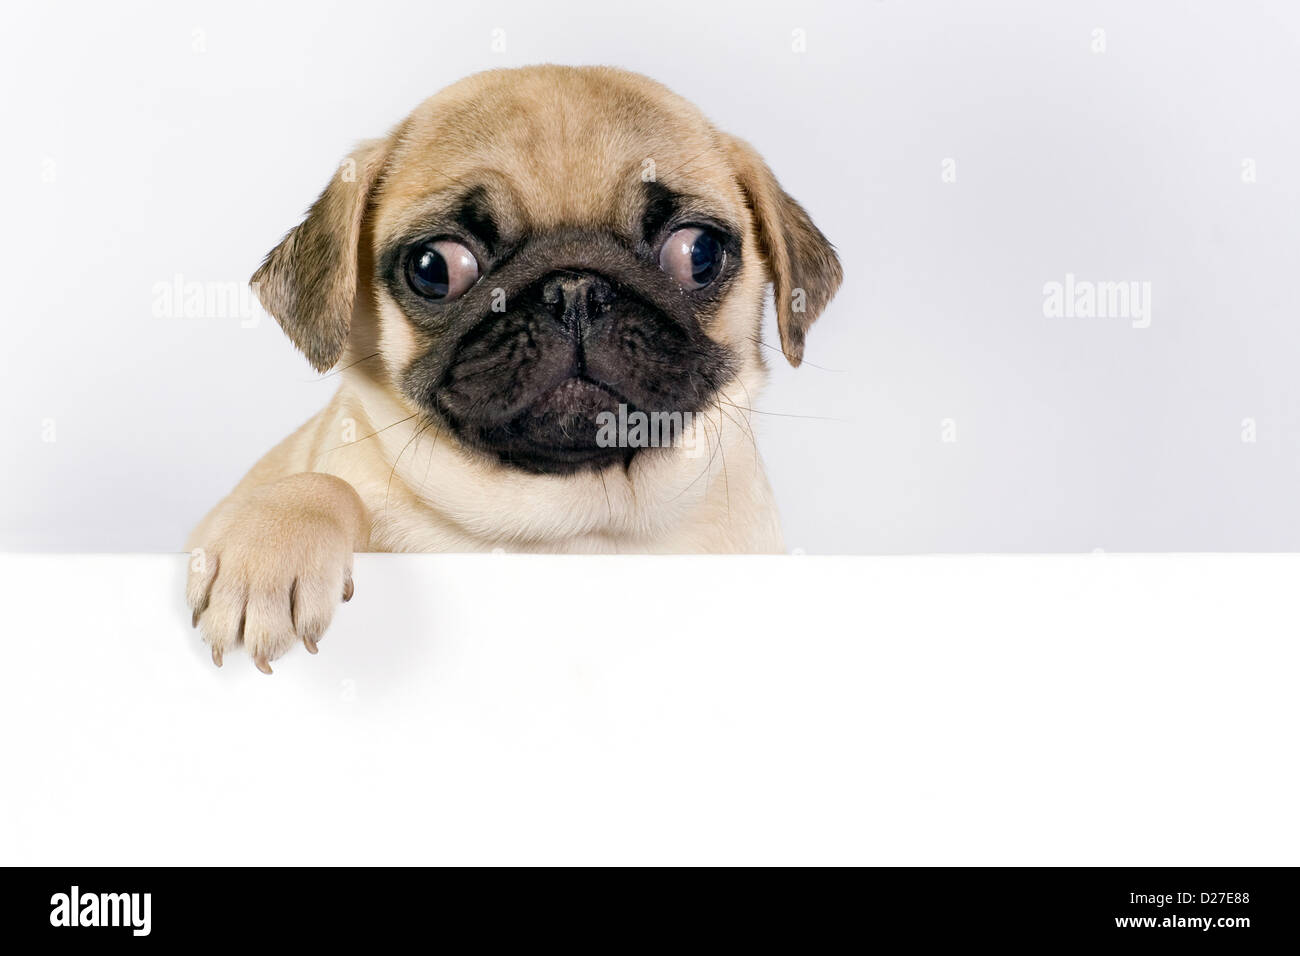 Cute Pug puppy on white background with space for text. - Stock Image